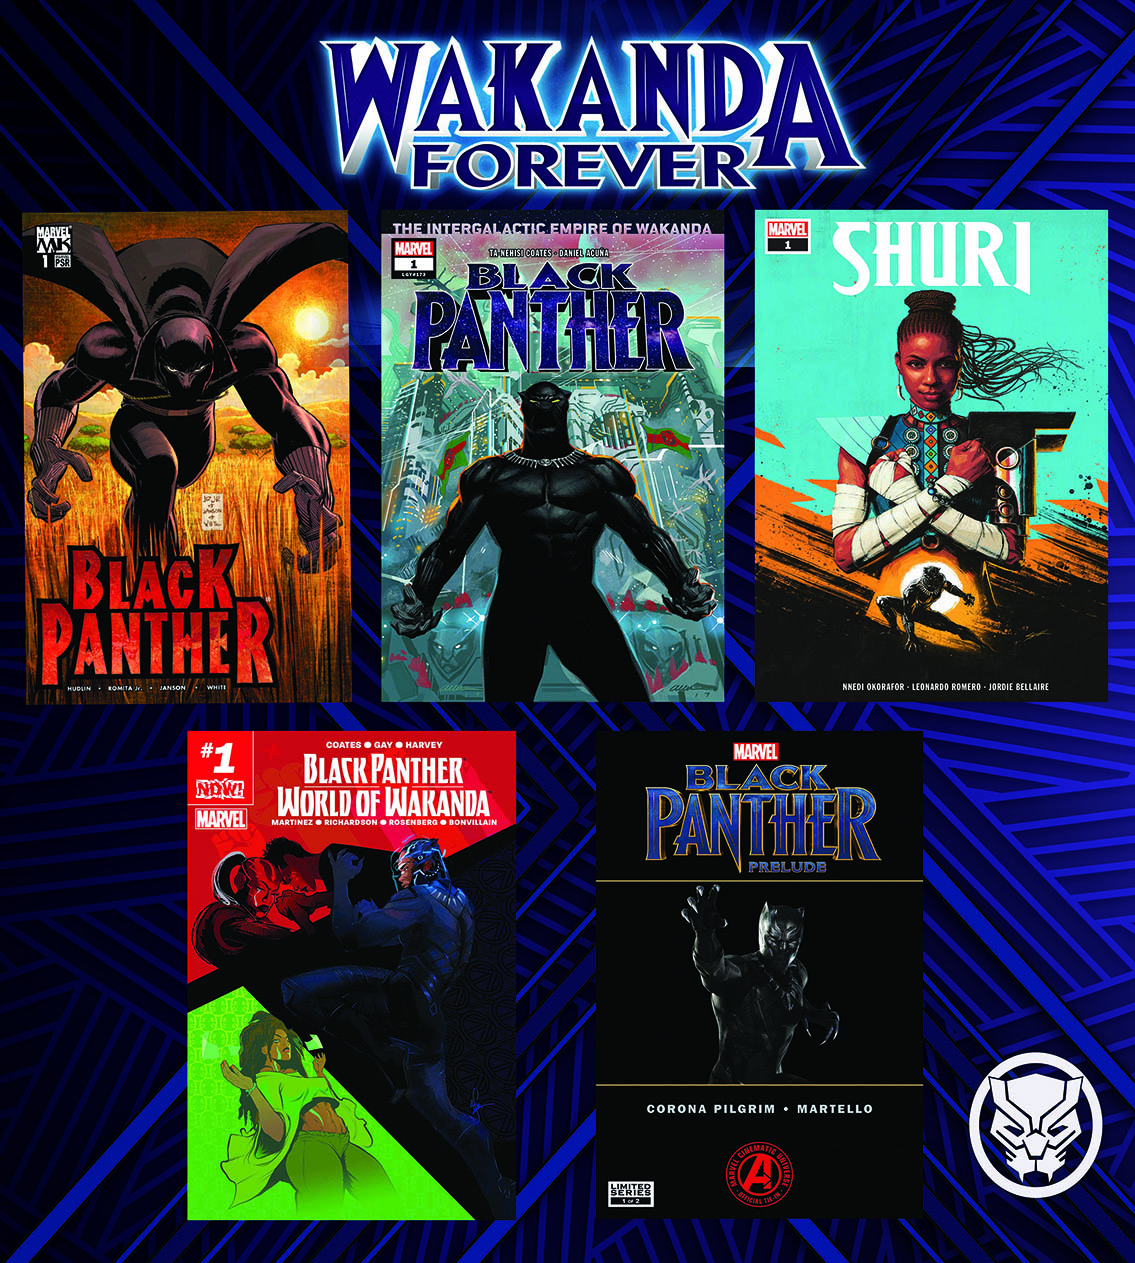 Celebrate Wakanda Forever this February with a free digital